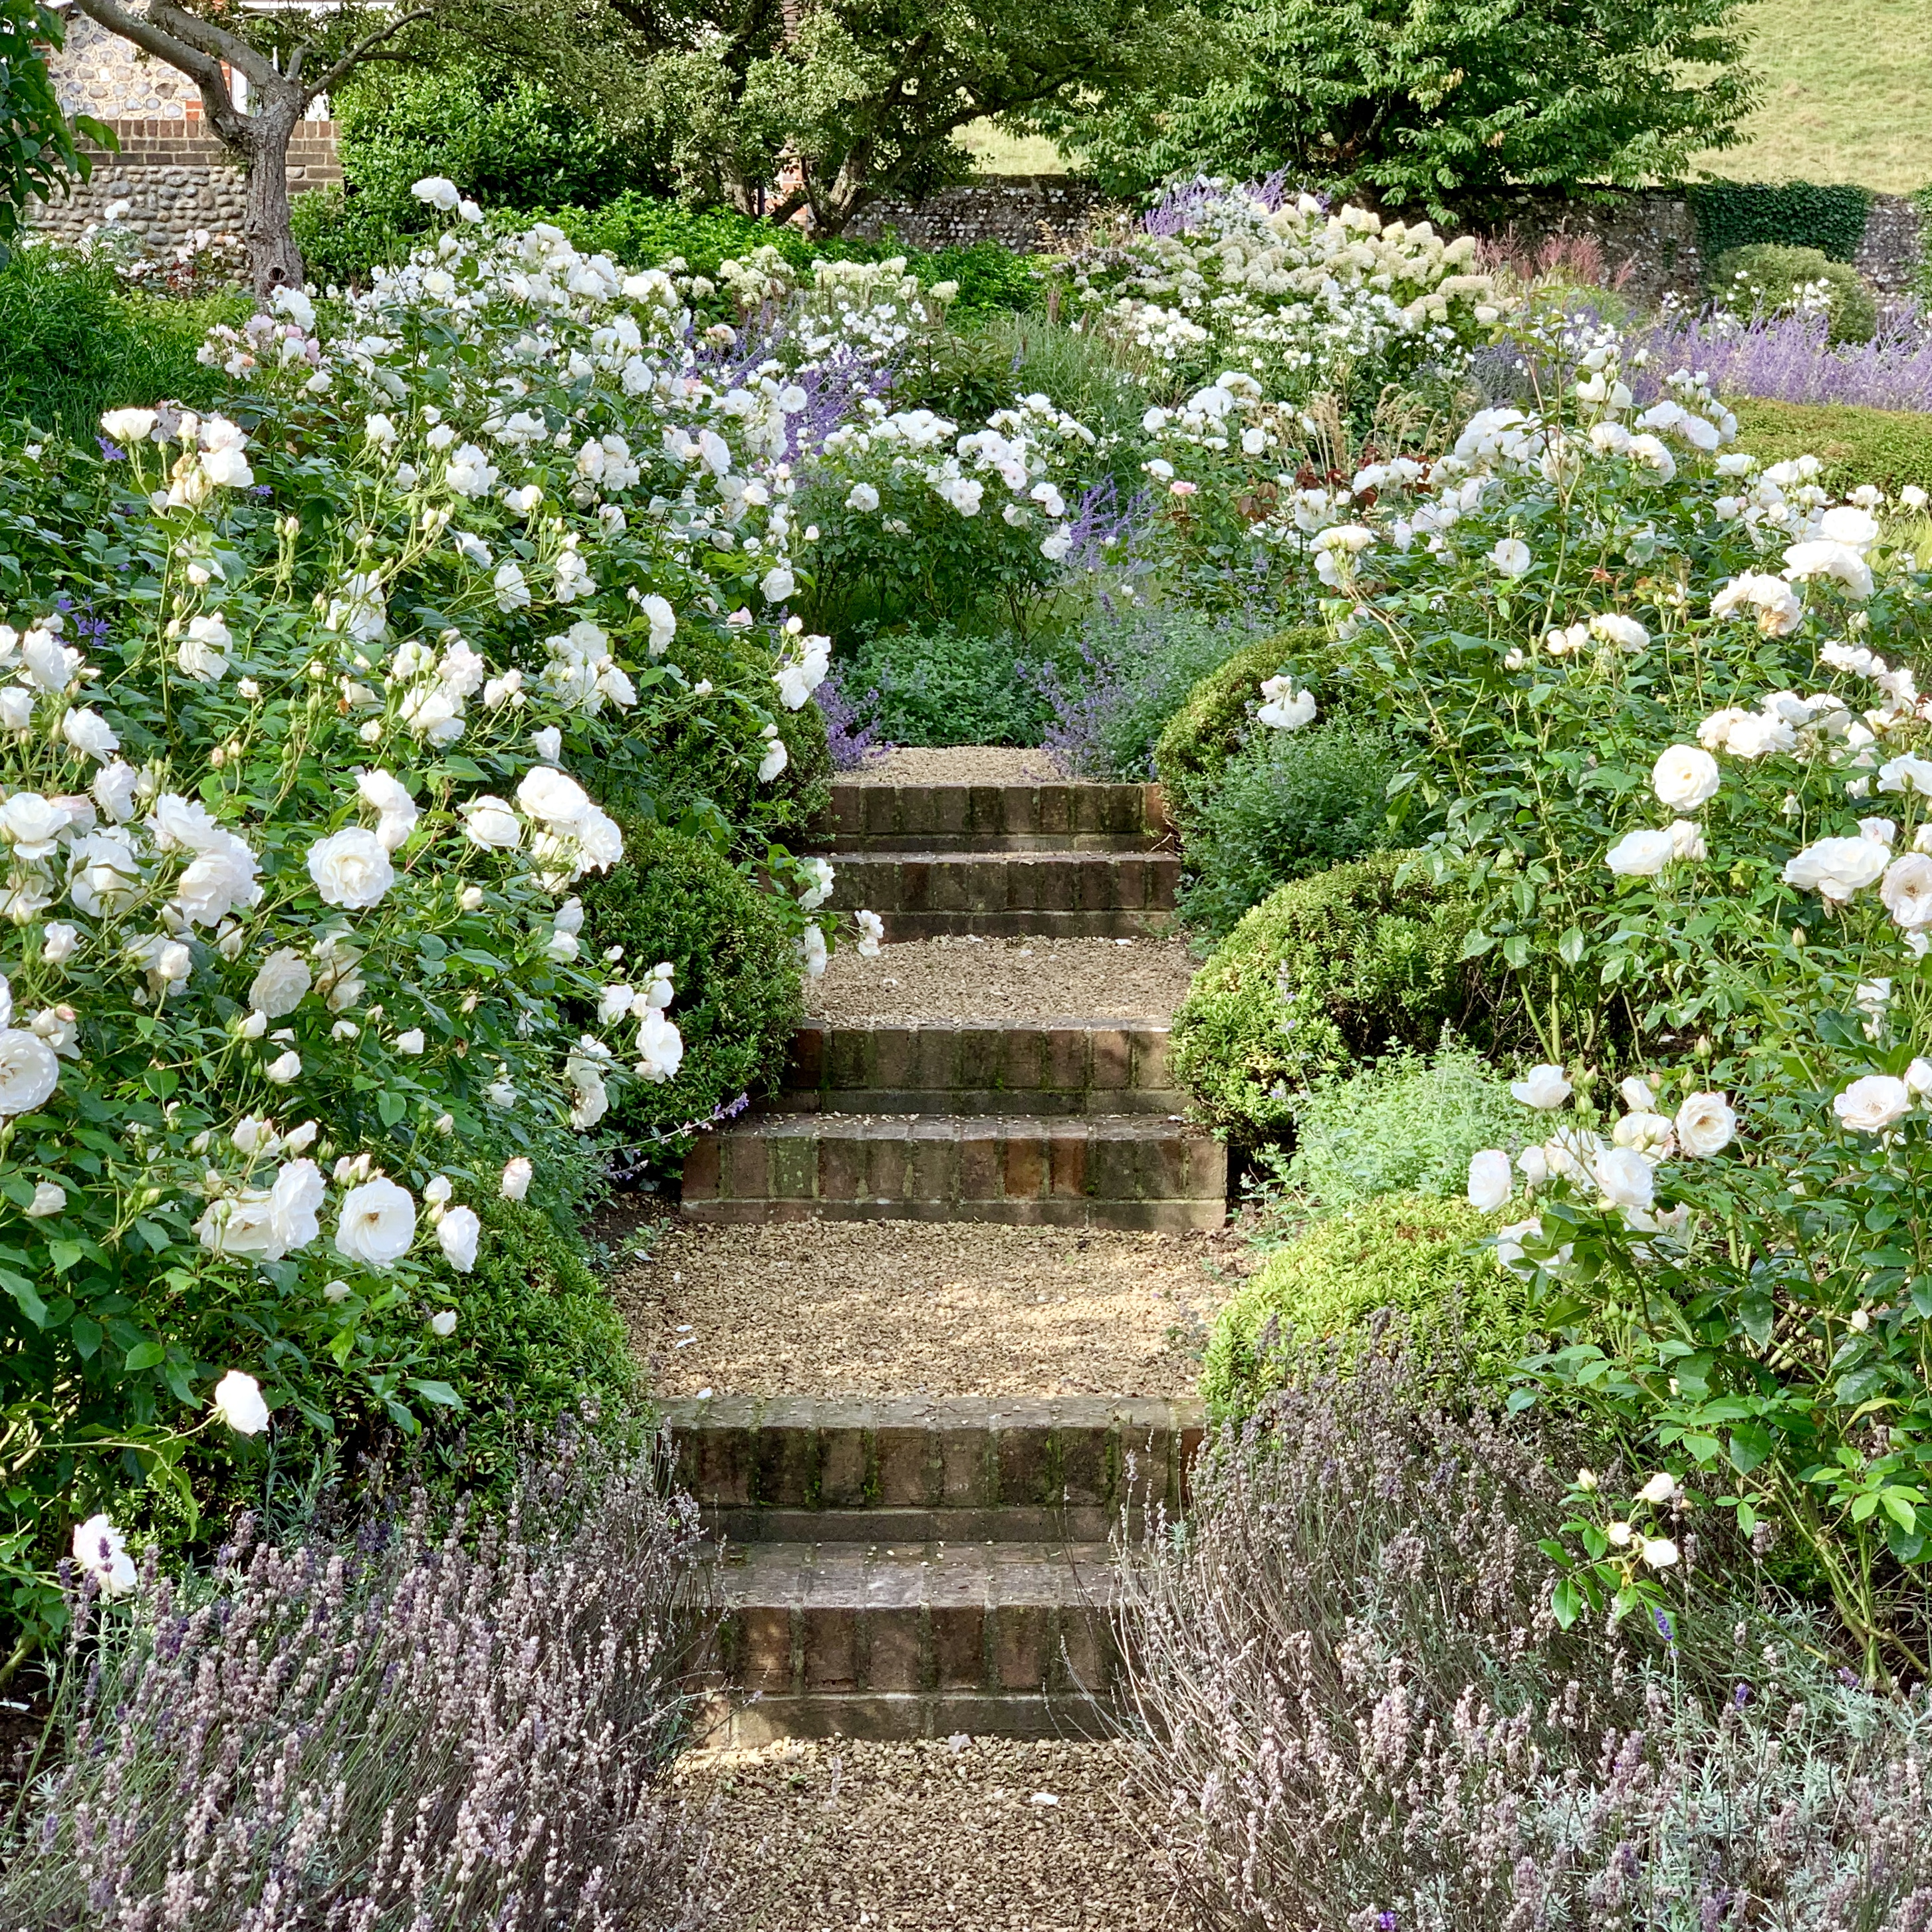 Acres Wild Isolated Idyll Steps with Roses